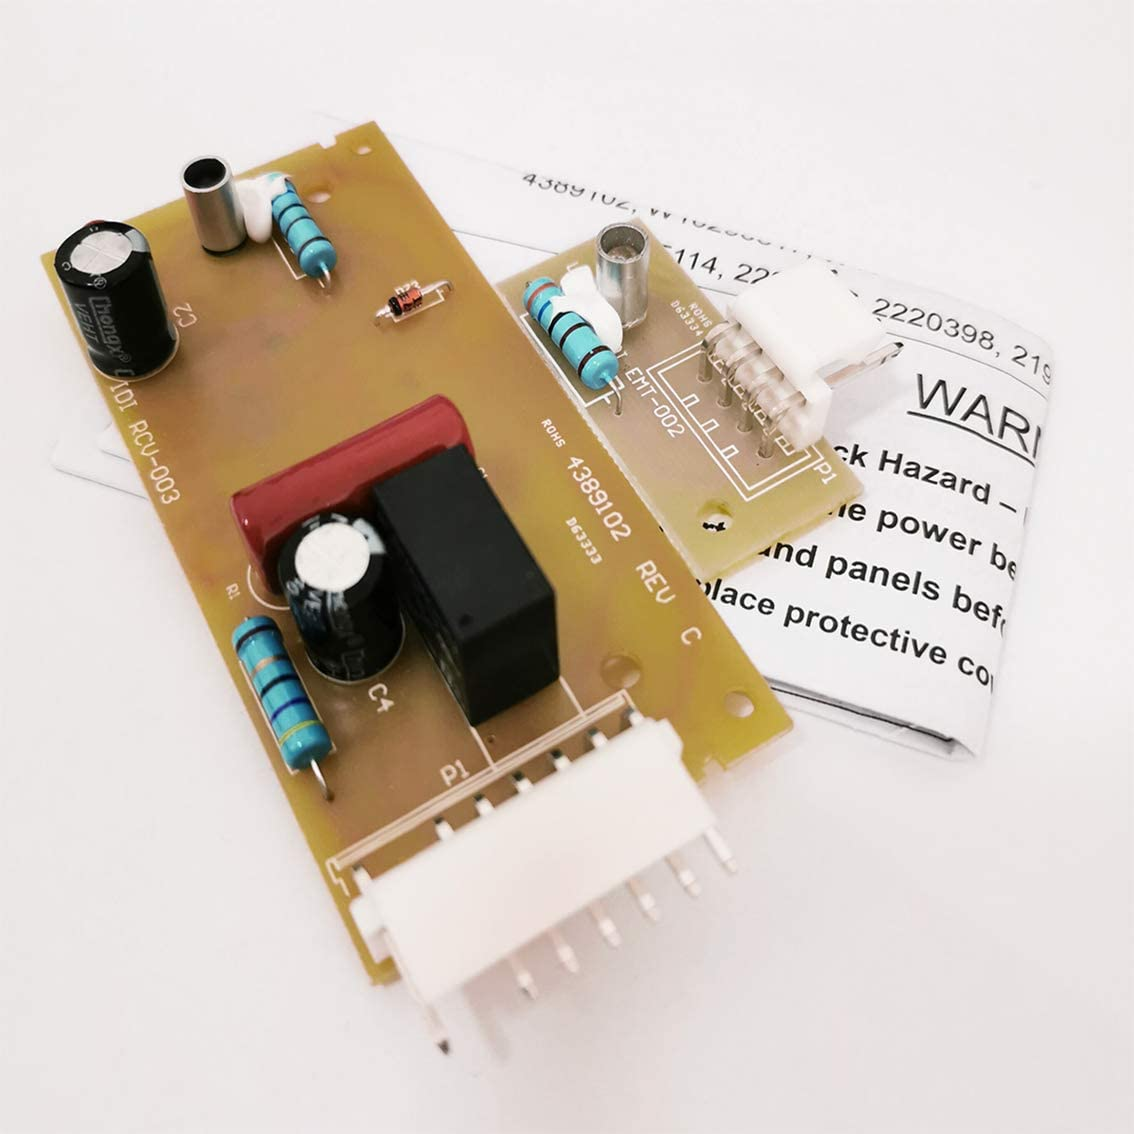 4389102 Refrigerator Icemaker Control Board Kit fit for Whirlpool Maytag Kenmore Emitter Sensor Refrigerators replaces W10290817 W10193666 W10193840 2198586 and 2198585